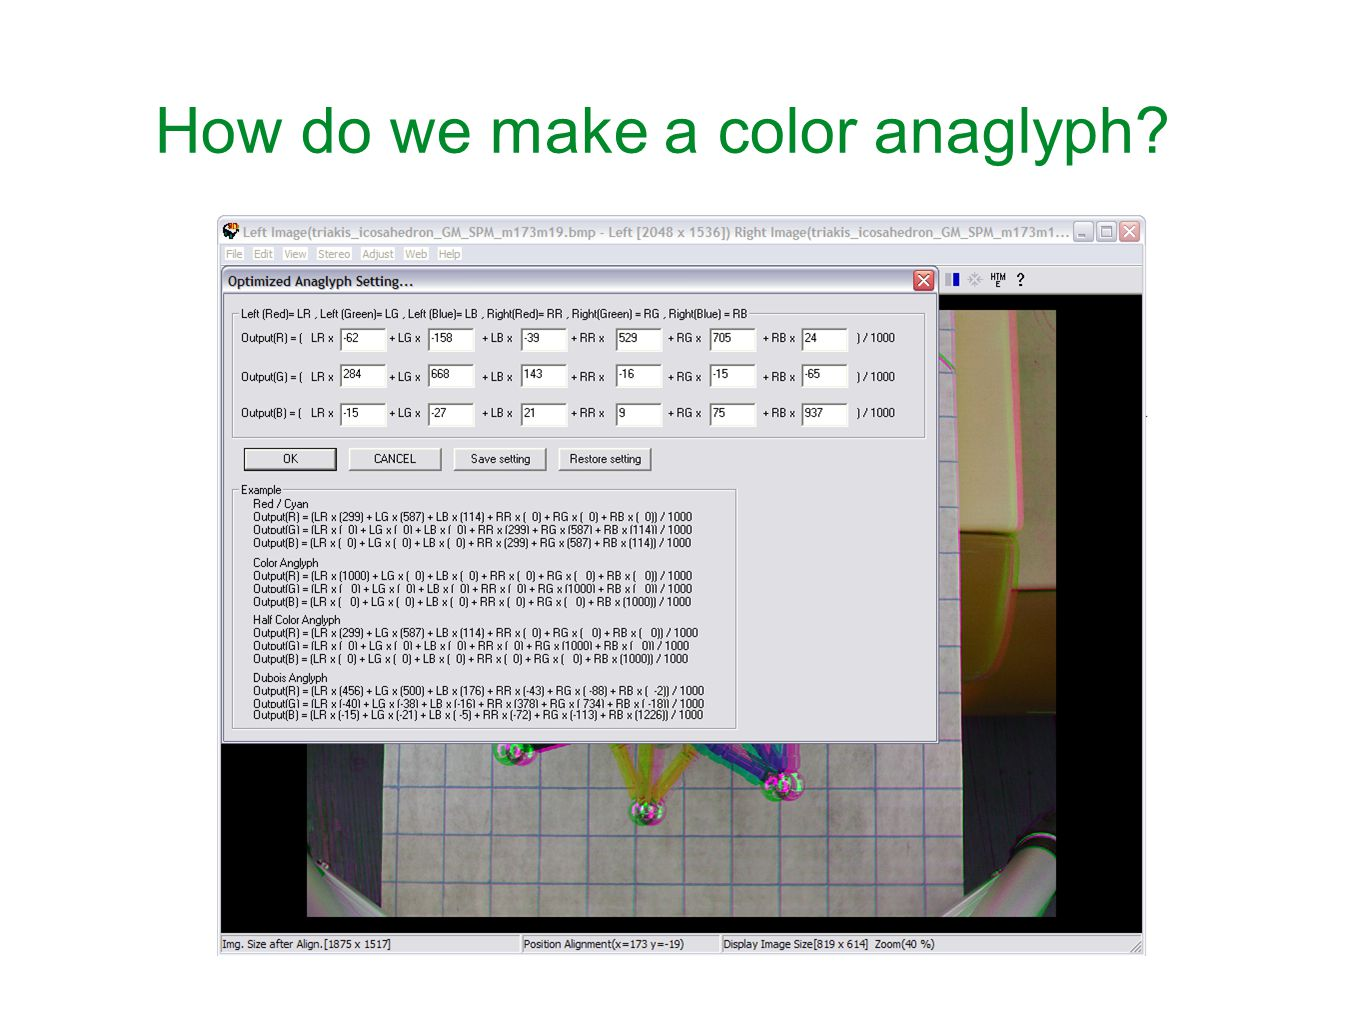 How do we make a color anaglyph